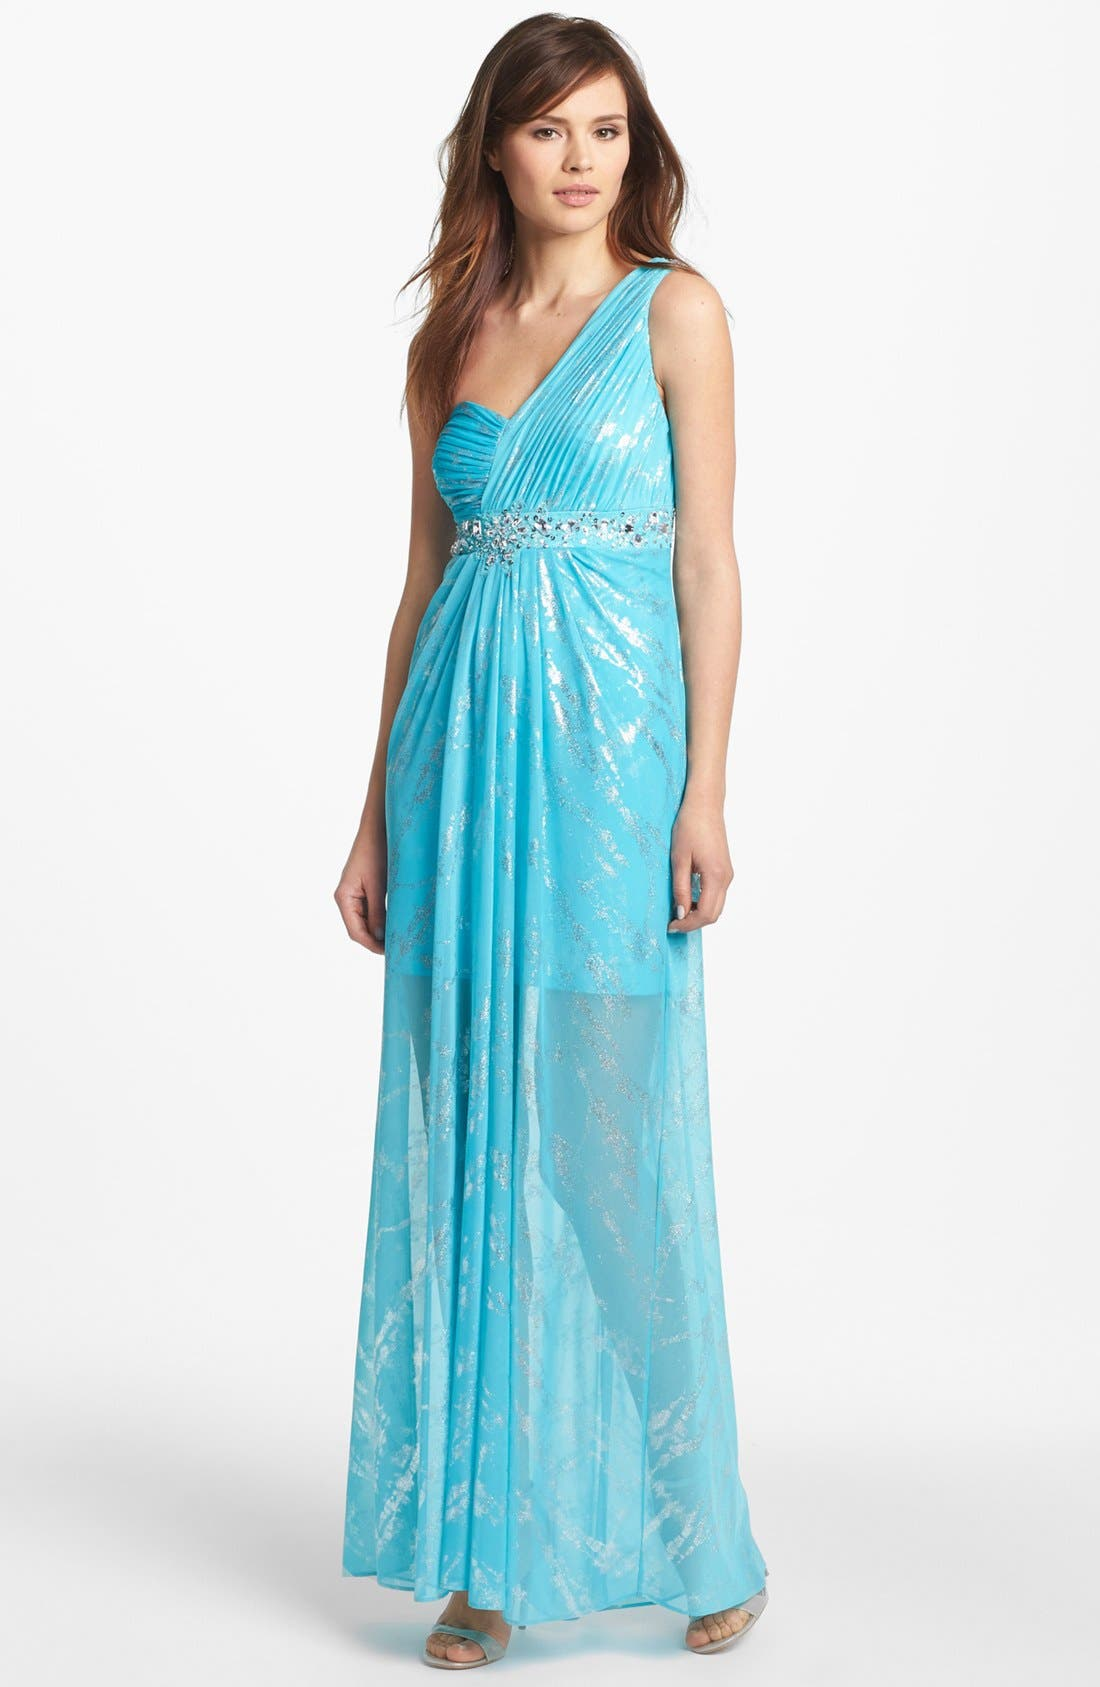 Alternate Image 1 Selected - Hailey by Adrianna Embellished One Shoulder Foiled Chiffon Gown